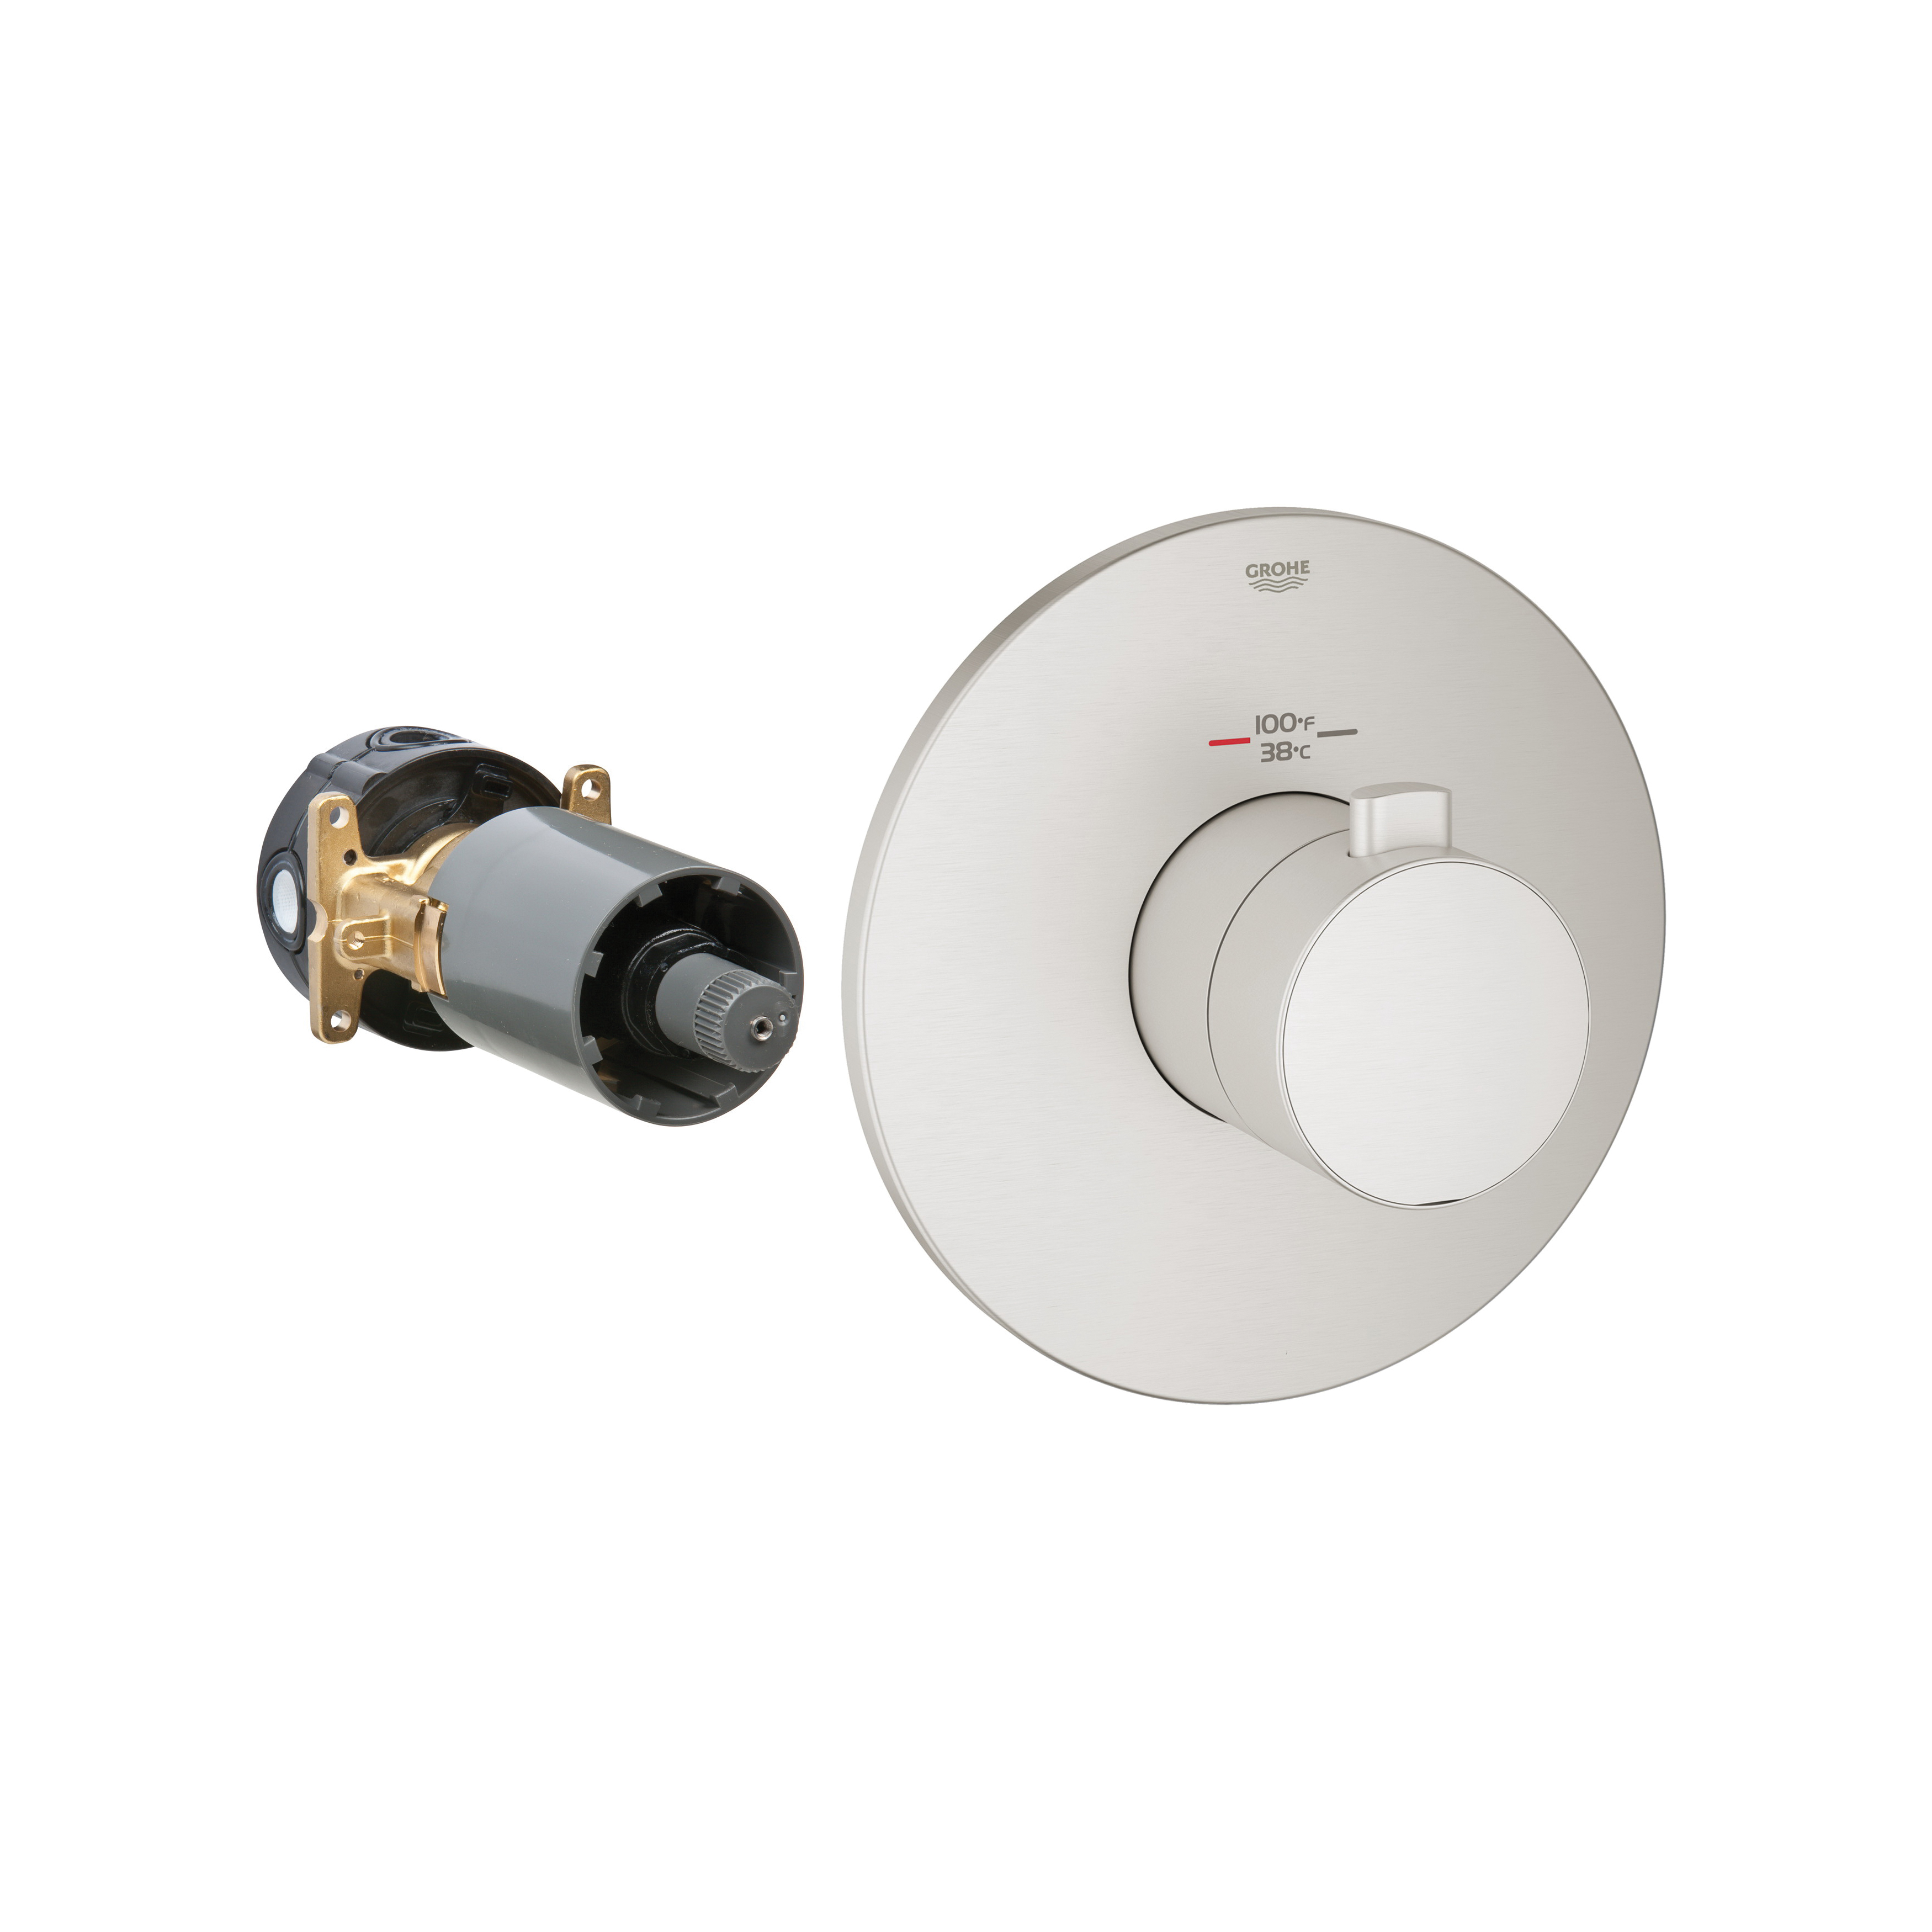 GROHE 19879EN0 Europlus® Custom Shower Thermostatic Trim, 14 gpm Shower, Hand Shower Yes/No: No, Brushed Nickel